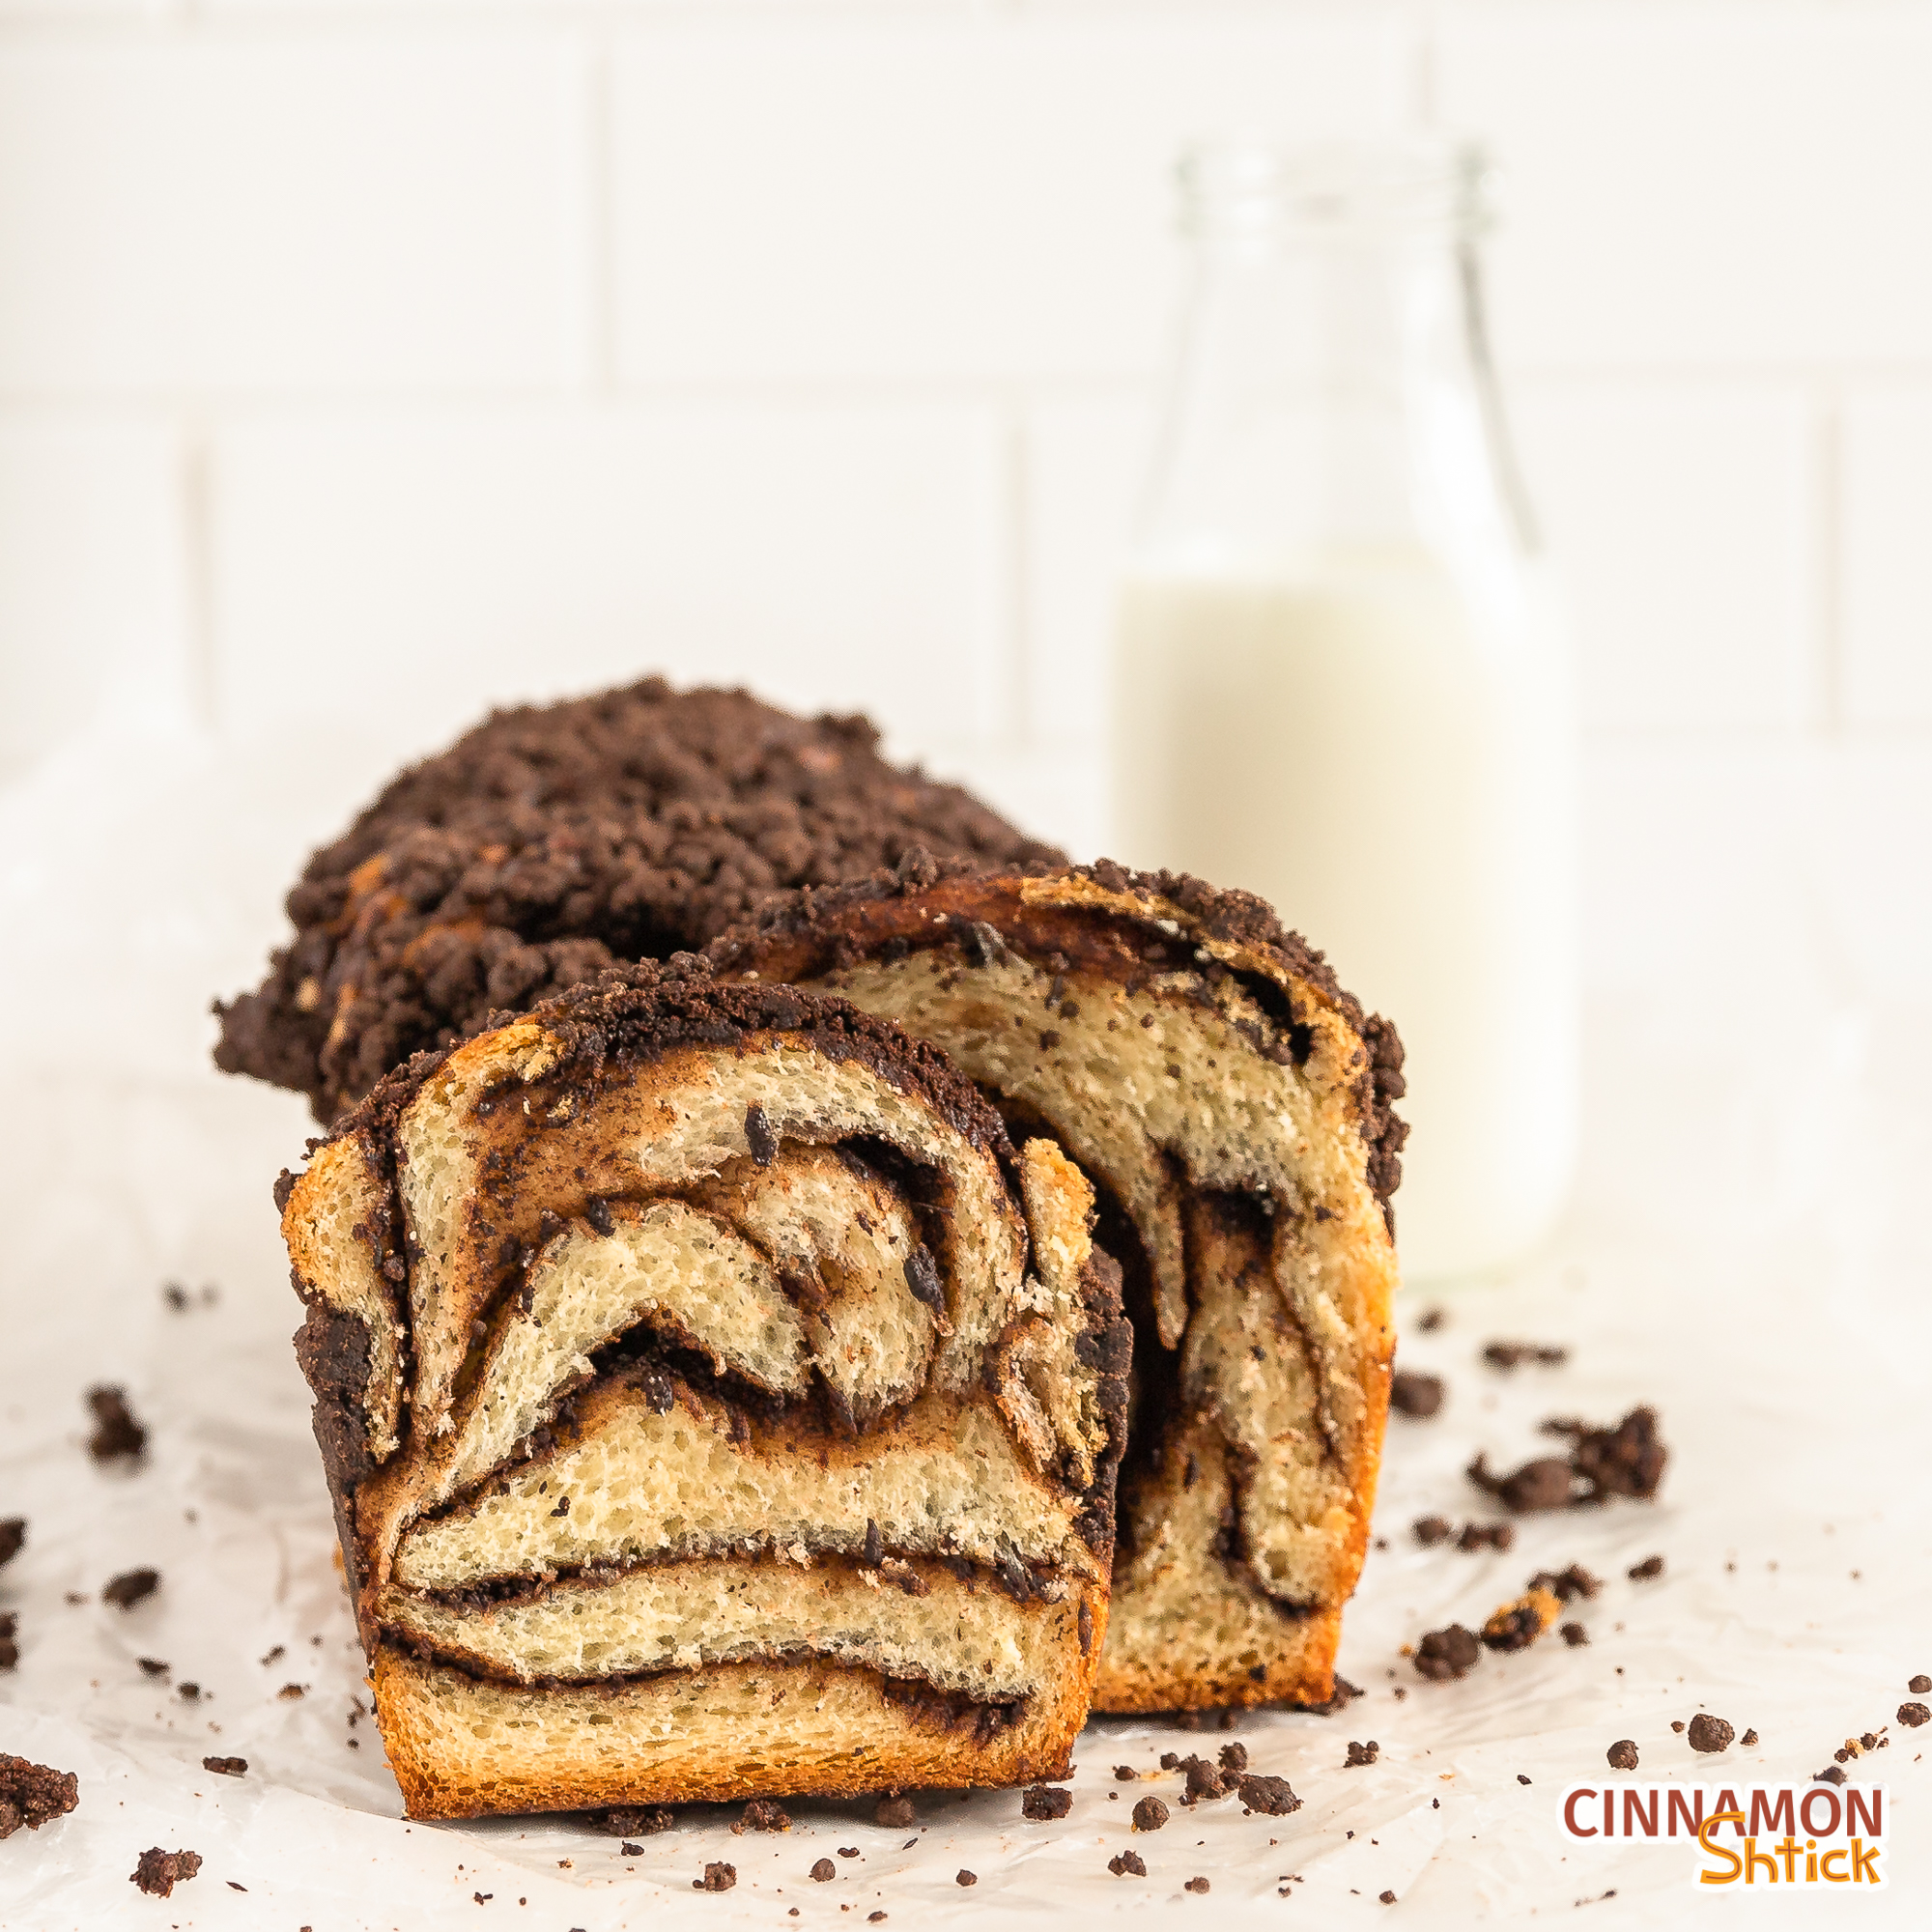 straight on shot of chocolate crumb babka showing the chocolate swirls in the babka with a bottle of milk in background